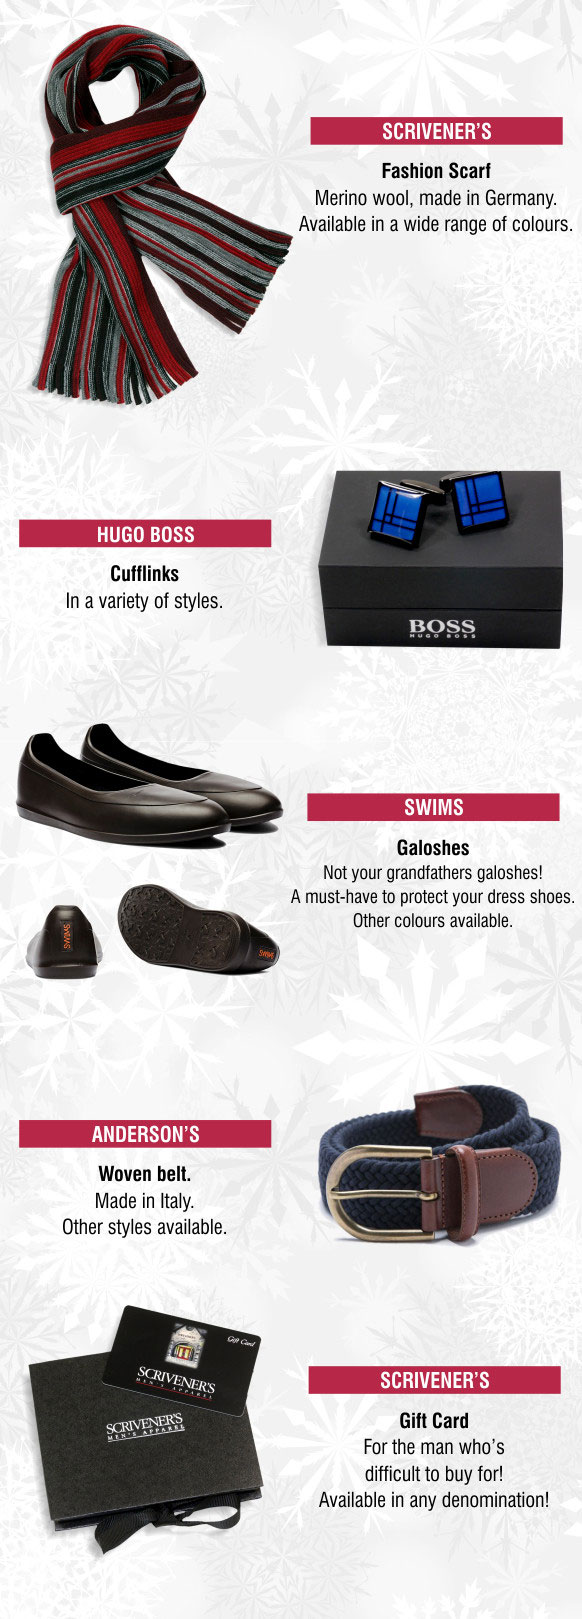 Scrivener's scarves, Hugo Boss cuff links, Swims galoshes, Anderson's belts, Scrivener's Gift Card gifts